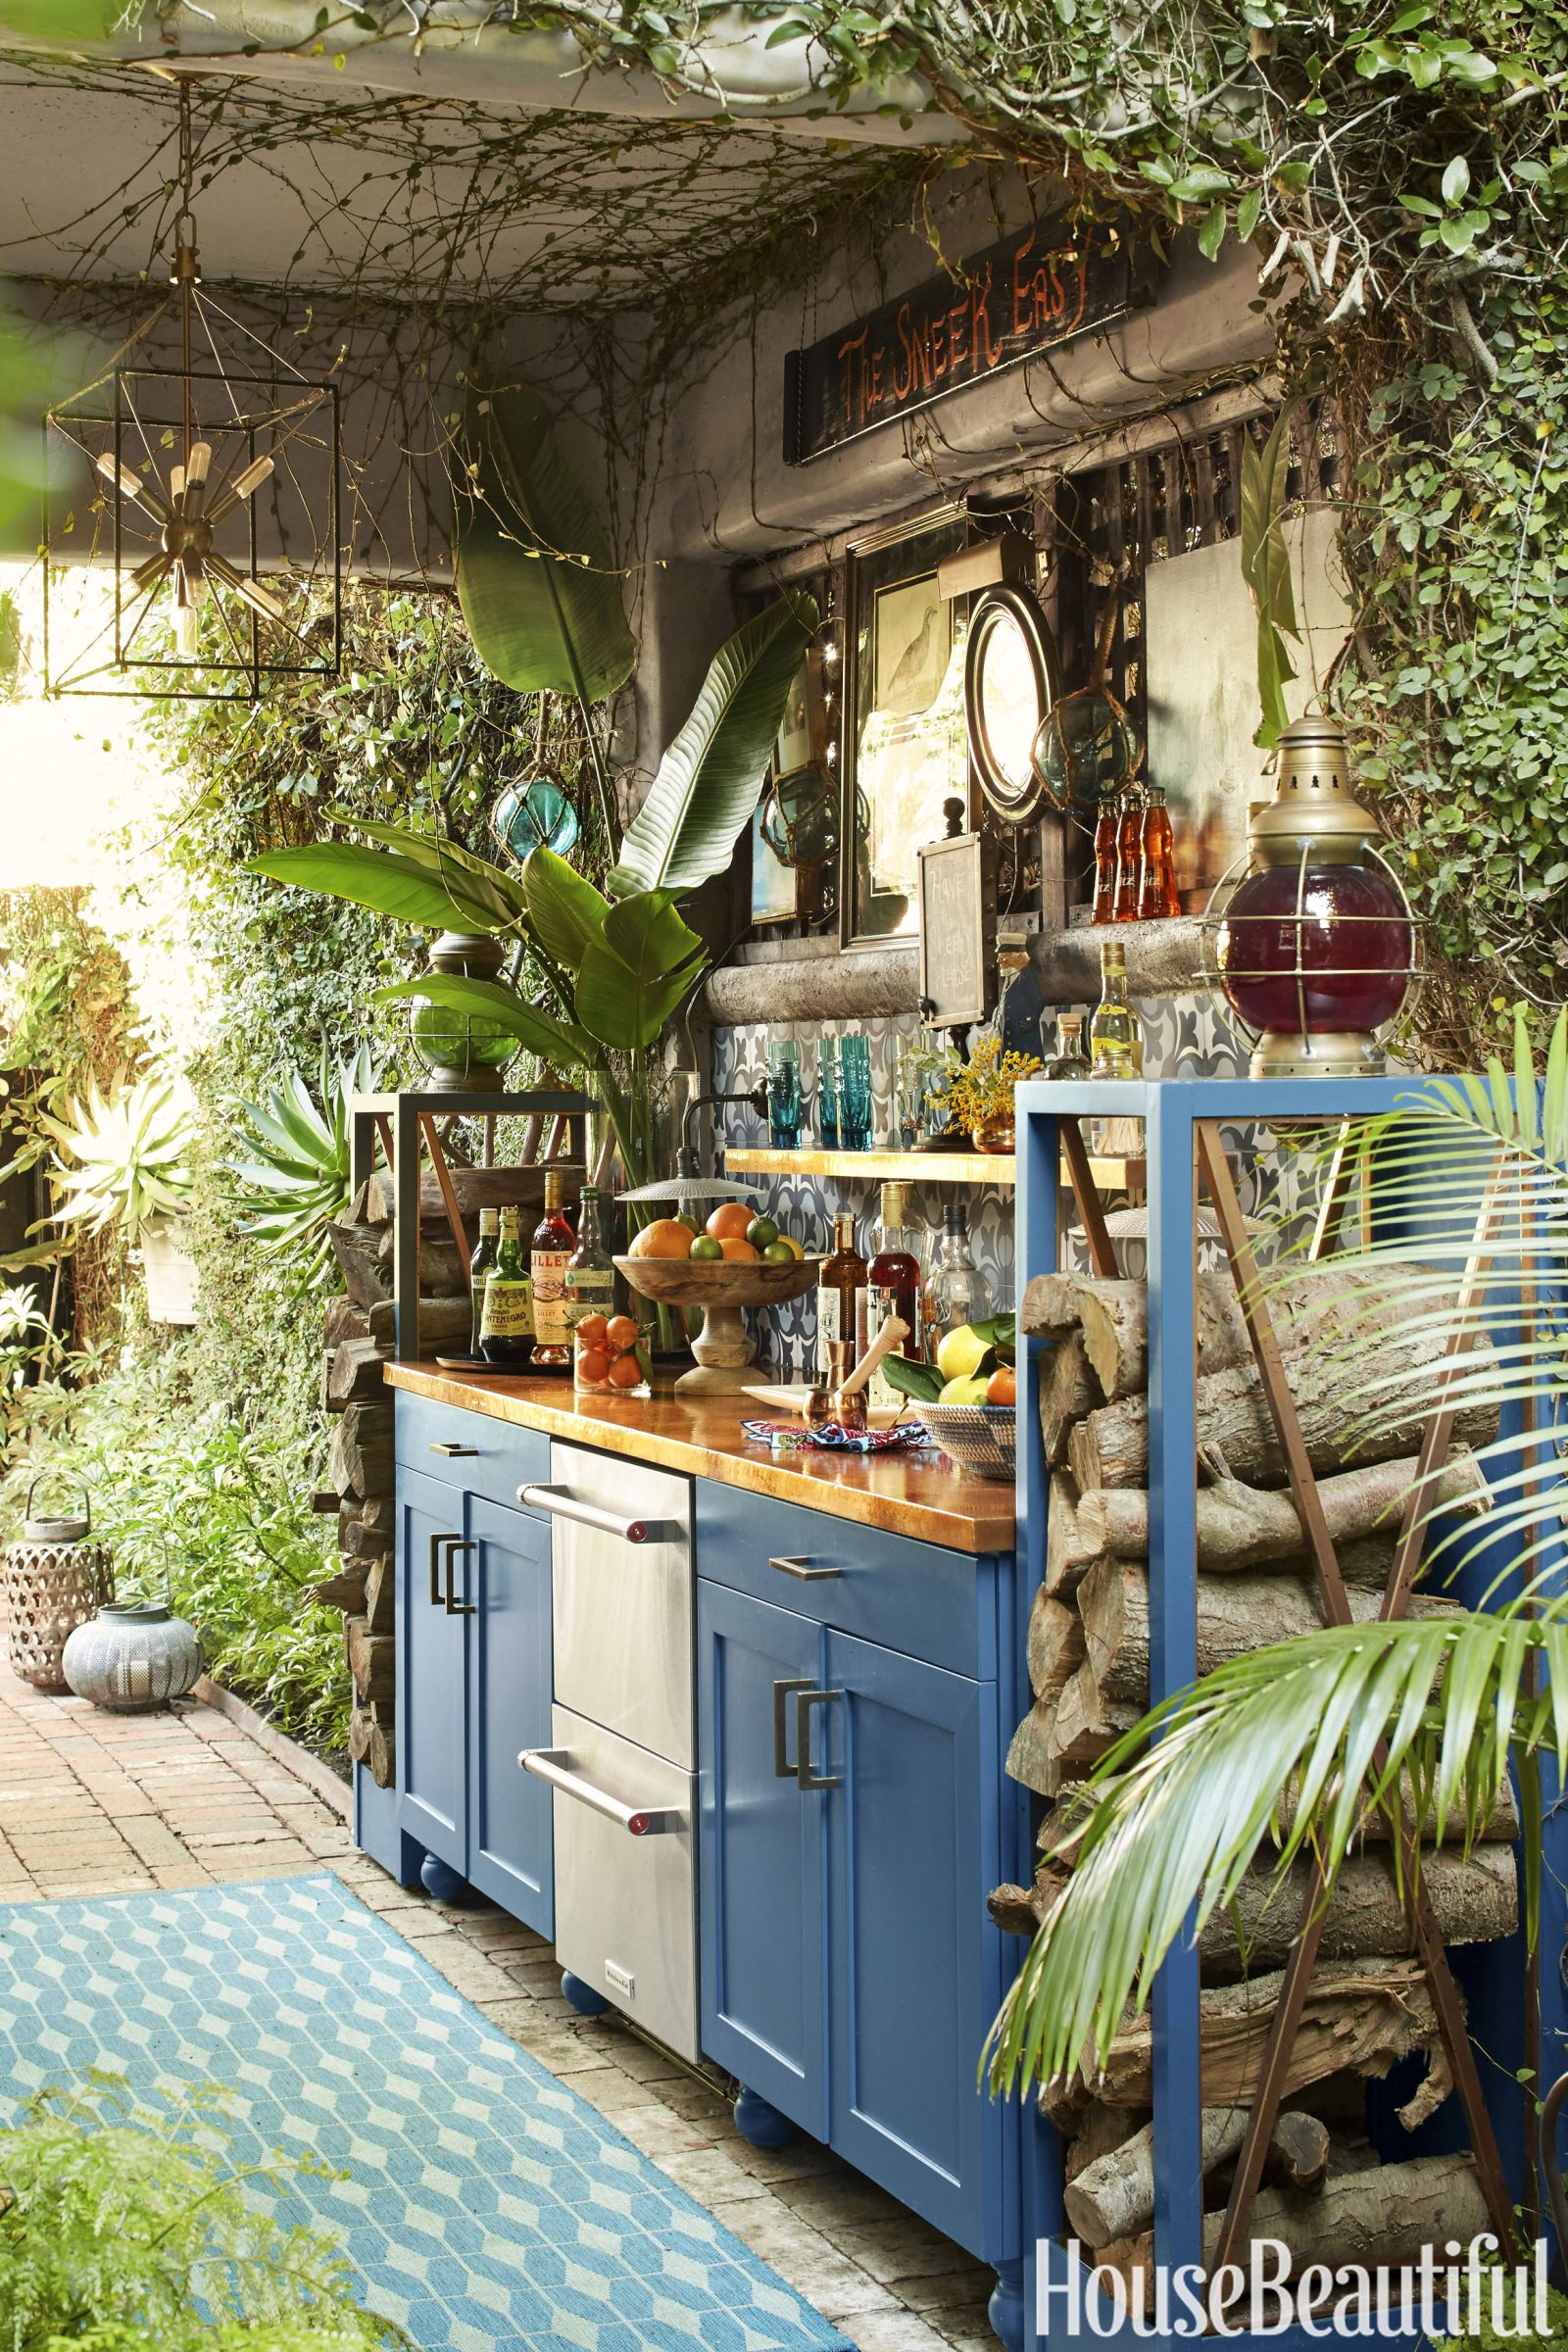 15 outdoor kitchens that will make you never want to cook inside again outdoor kitchen design on hippie kitchen ideas boho chic id=86610